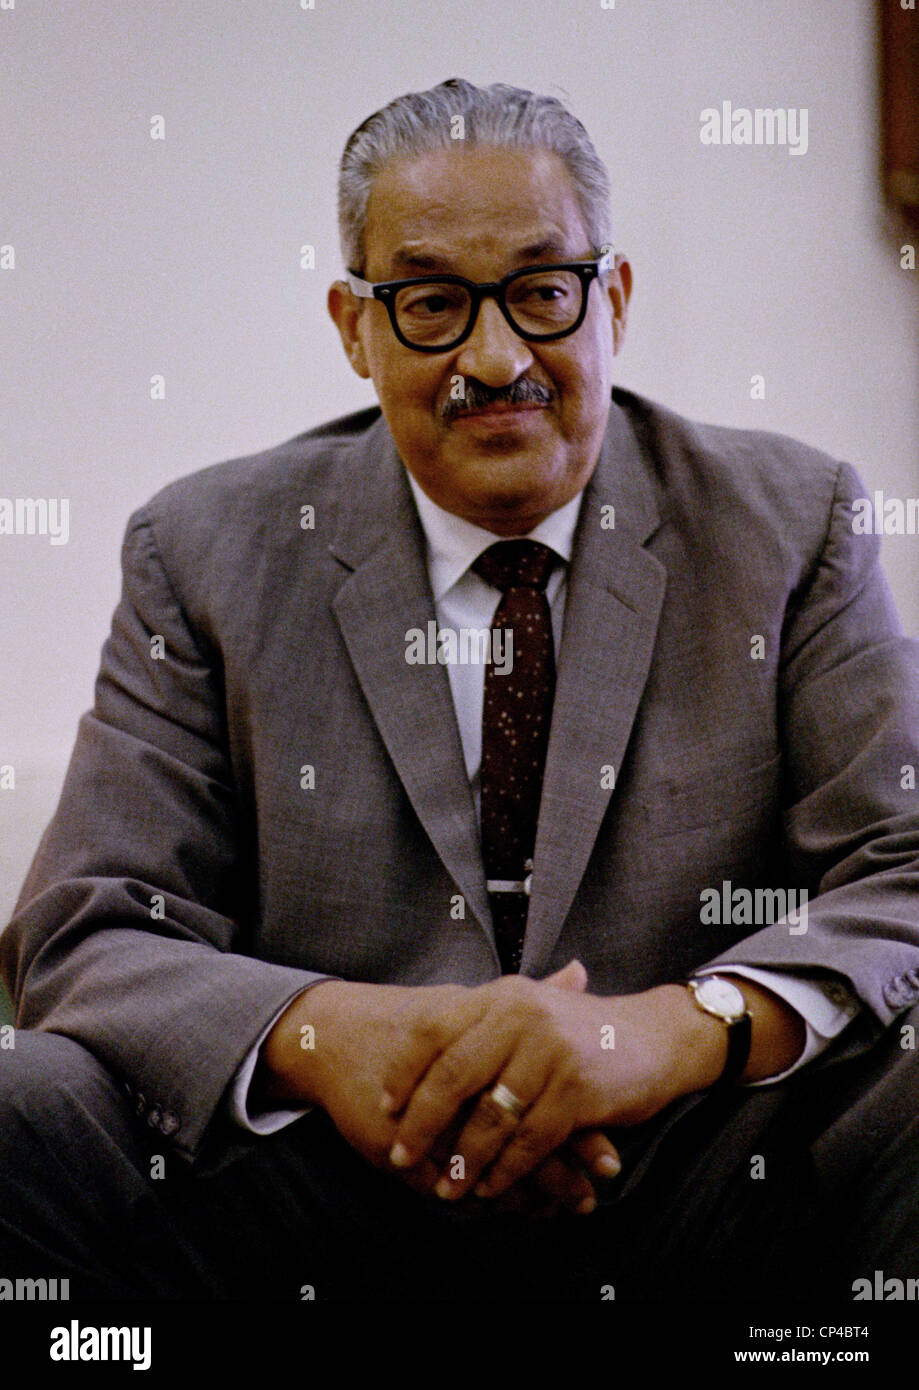 Thurgood Marshall (1908-1993), on June 13, 1967,the day President Johnson nominated him to the Supreme Court. When - Stock Image